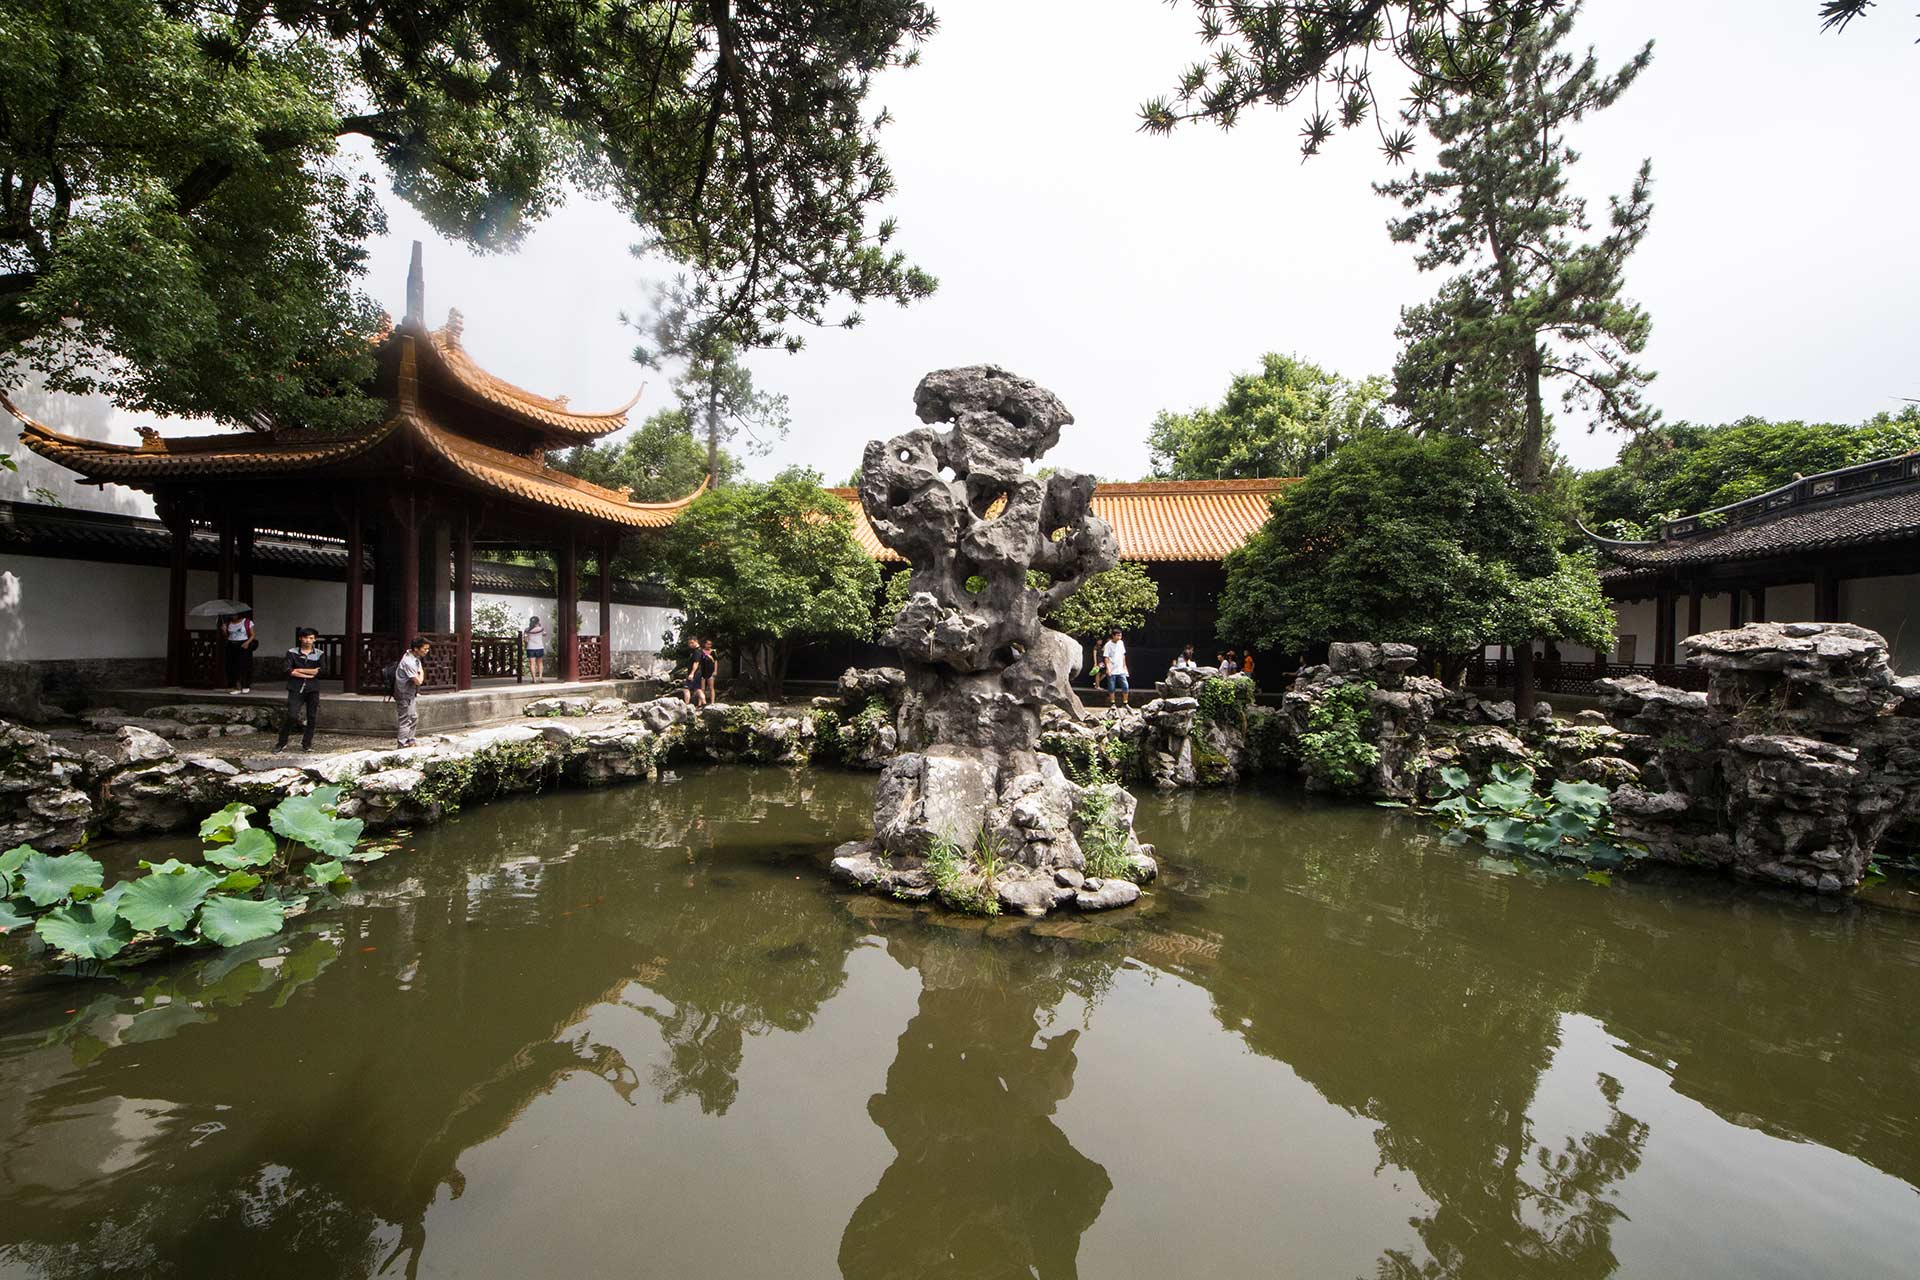 Typical Jiangnan courtyard of the Wenlan Pavilion by the West Lake, Hangzhou, Zhejiang, China